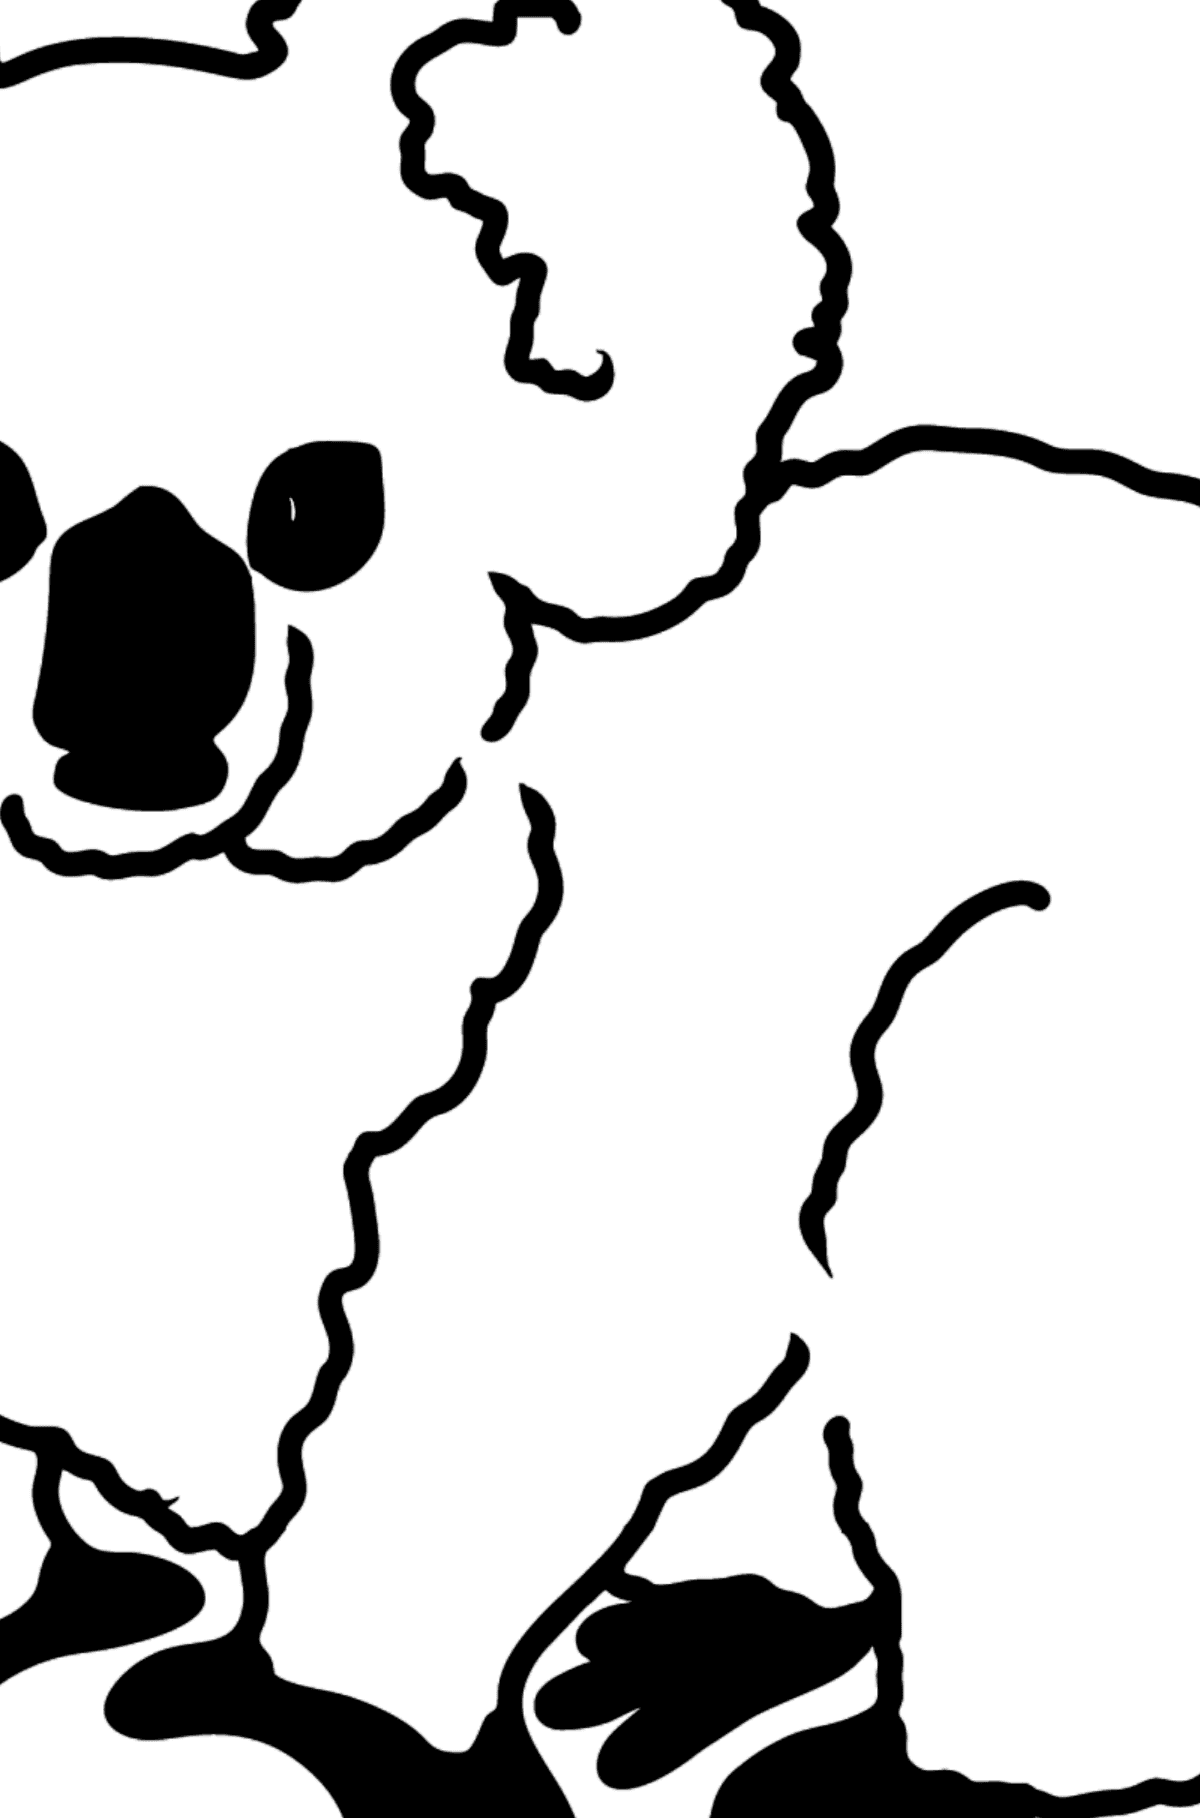 Koala coloring page - Math Coloring - Addition for Kids